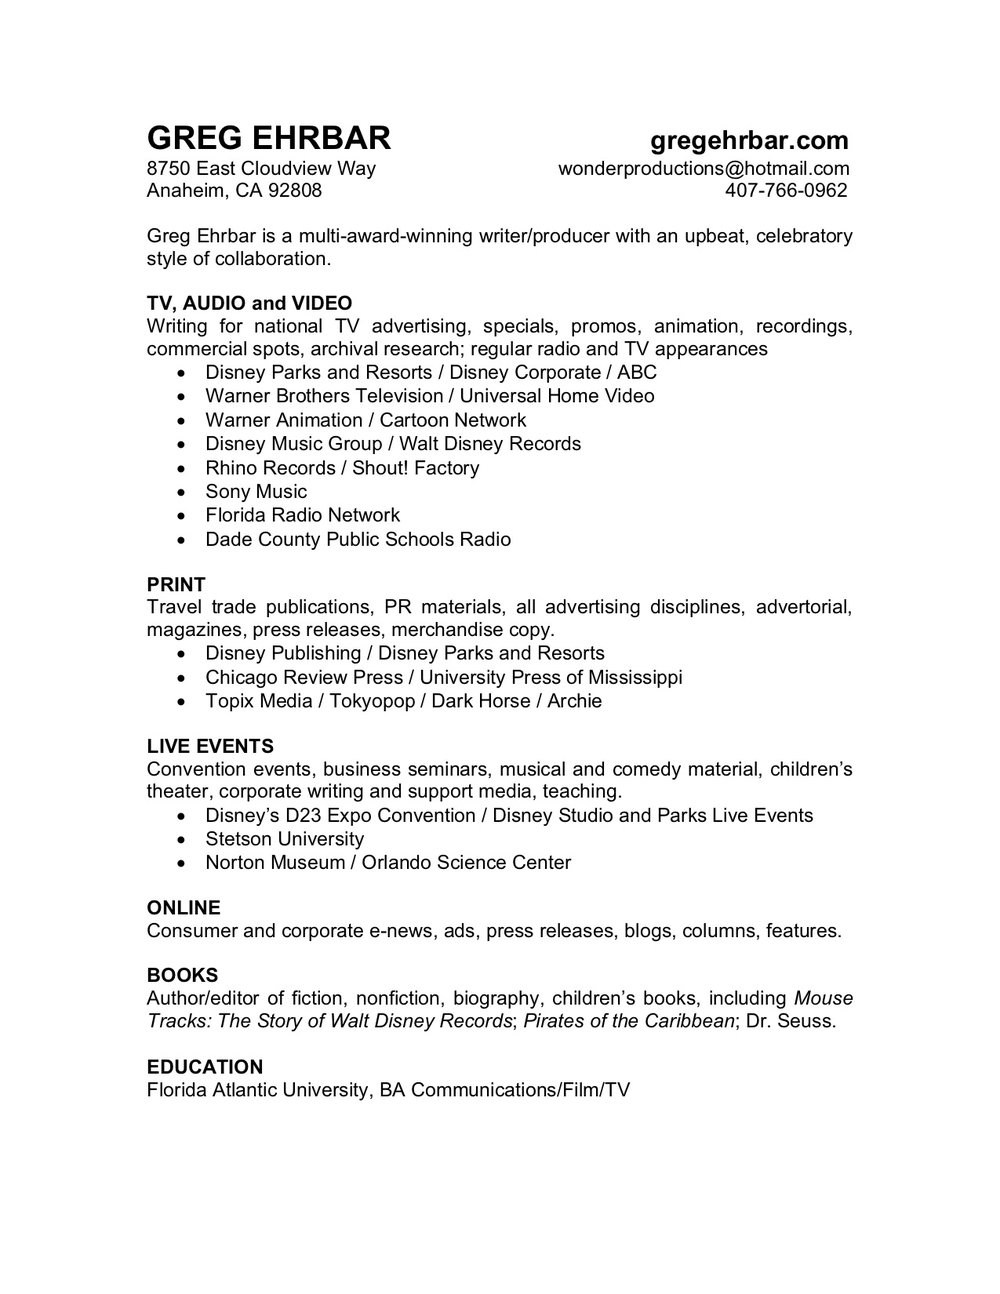 GREG EHRBAR Resume  copy.jpg